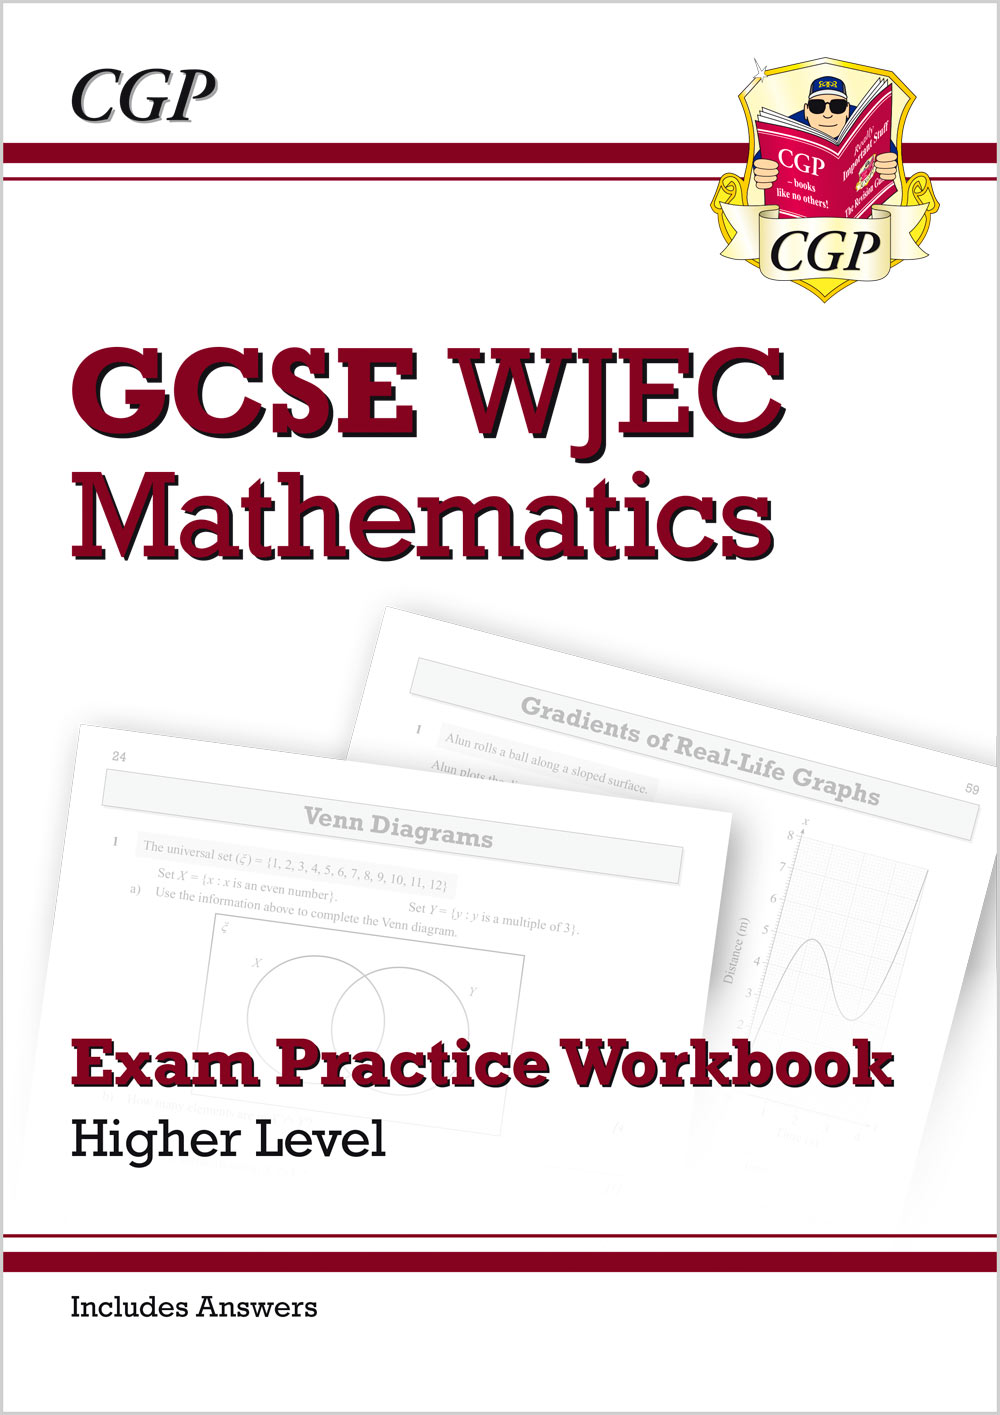 MWHQ41 - New WJEC GCSE Maths Exam Practice Workbook: Higher (includes Answers)